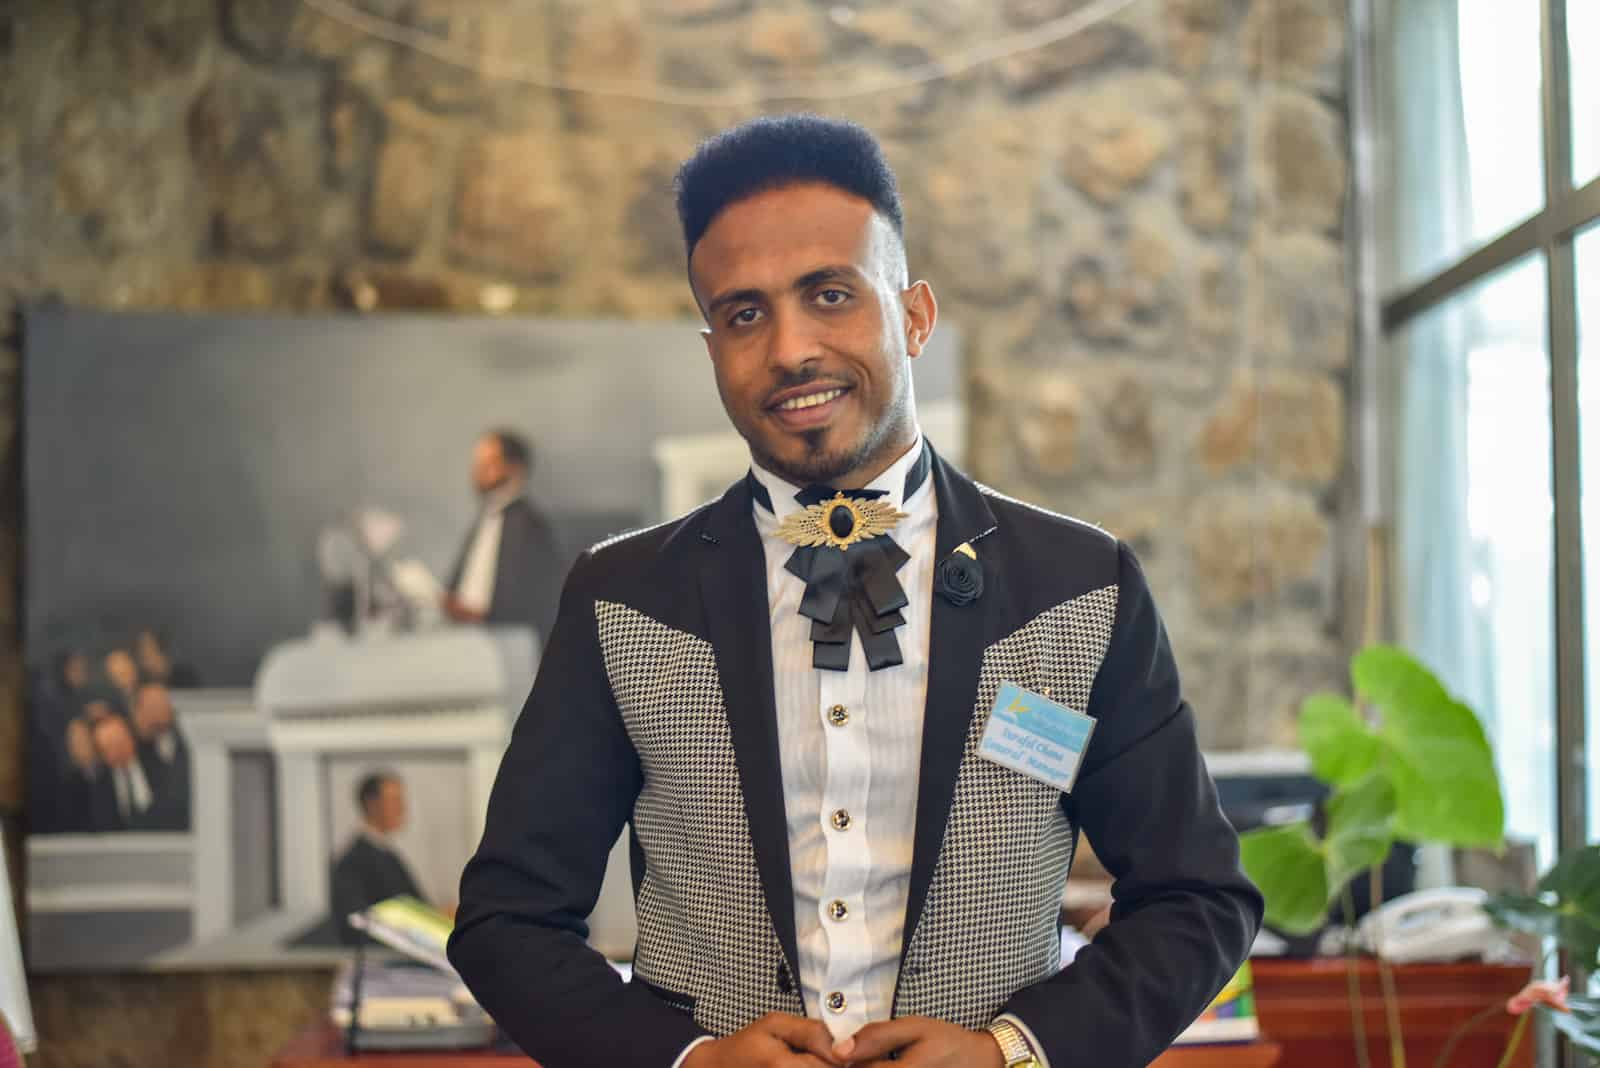 A man stands in a hotel lobby wearing a black, white and gray suit.